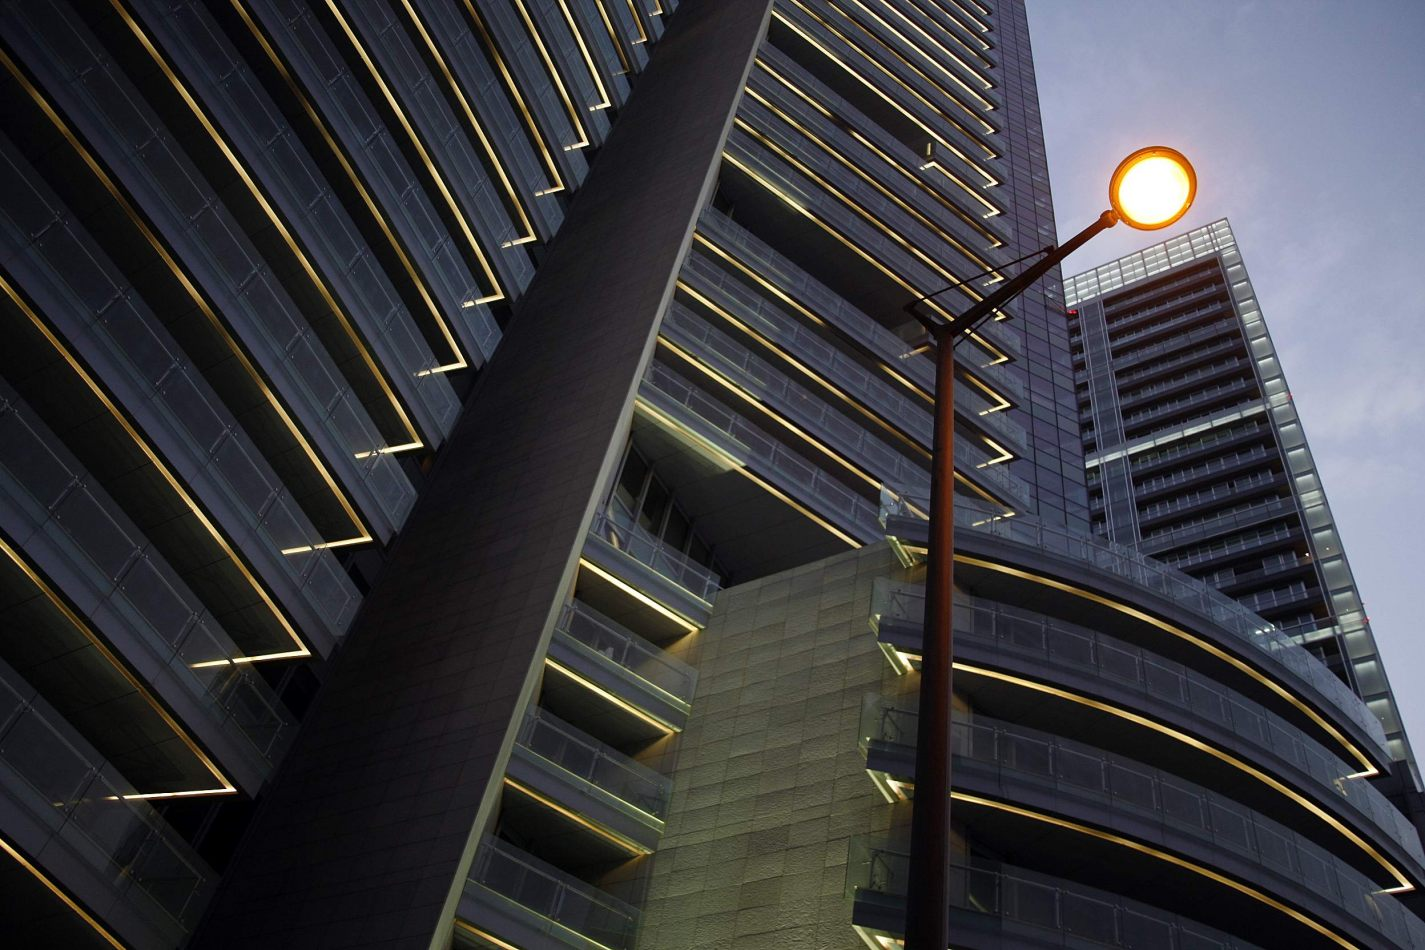 Anthony Ellis Photography: Confessions - New Towers